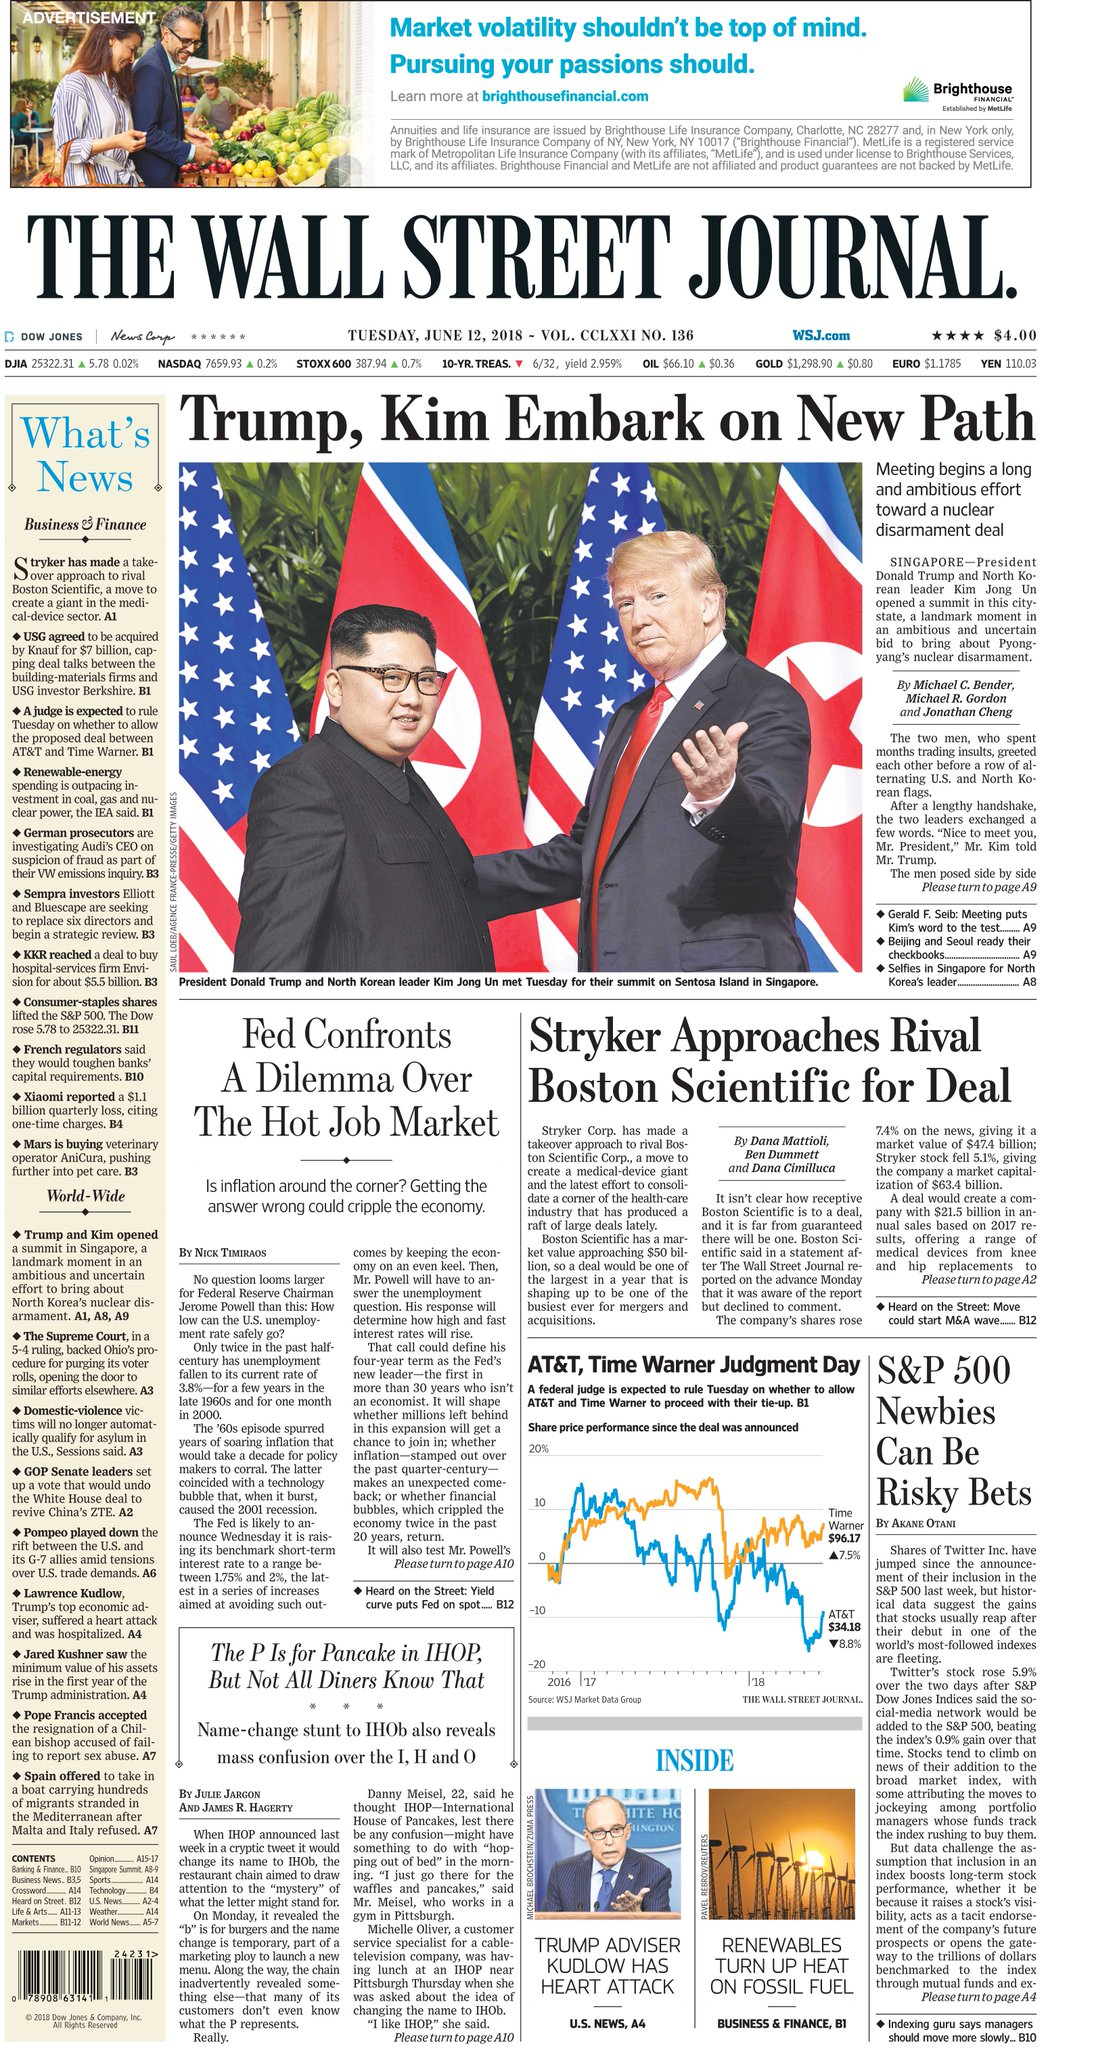 Take an early look at the front page of The Wall Street Journal https://t.co/5xQPDPcm8q #TrumpKimSummit https://t.co/Zw4dCaTx1c